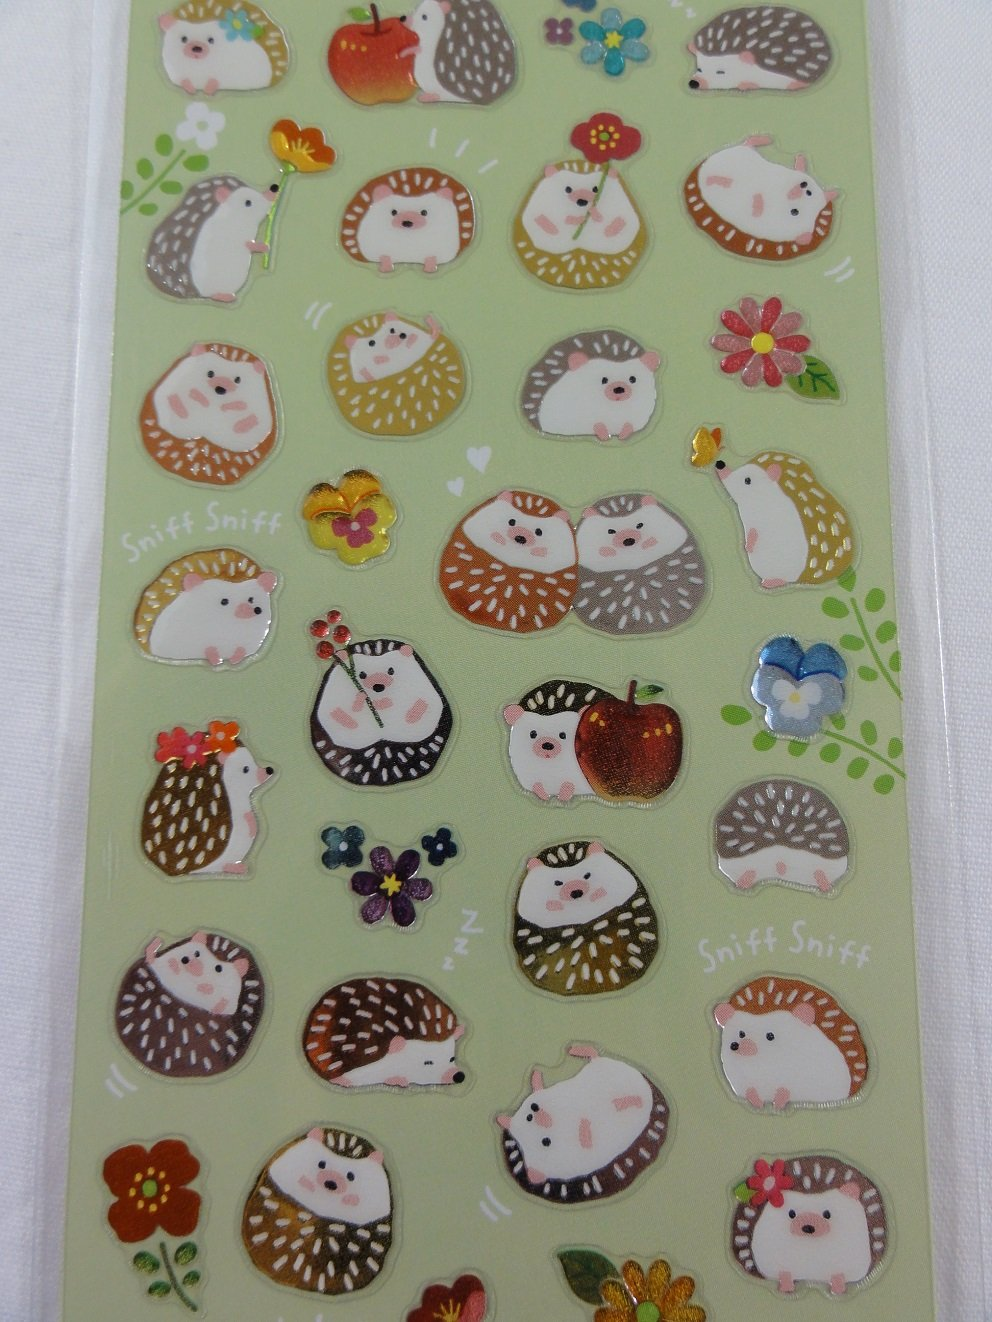 Cute Kawaii Mind Wave Hedgehog Sticker Sheet - for Journal Planner Craft Organizer Scrapbook Notebook